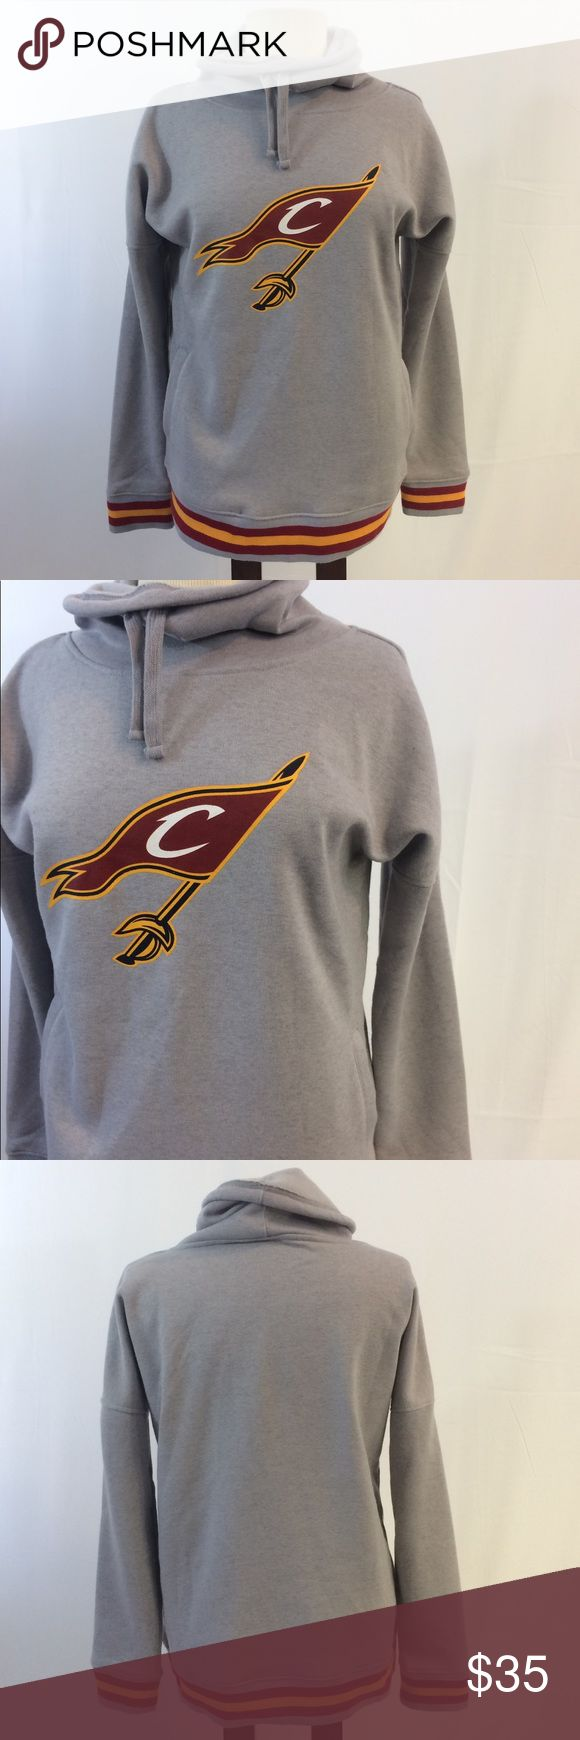 "[Cleveland Cavaliers NBA] M Sweatshirt Cle Cavs -Size medium -Cleveland Cavaliers Logo -Oversized turtle neck sweatshirt -100% polyester -Soft inside   Measurements:  Pit to pit 21"" Waist 19"" Sleeve length 18"" Length 25""  We are always open to reasonable offers on our entire closet! NBA Tops Sweatshirts & Hoodies"